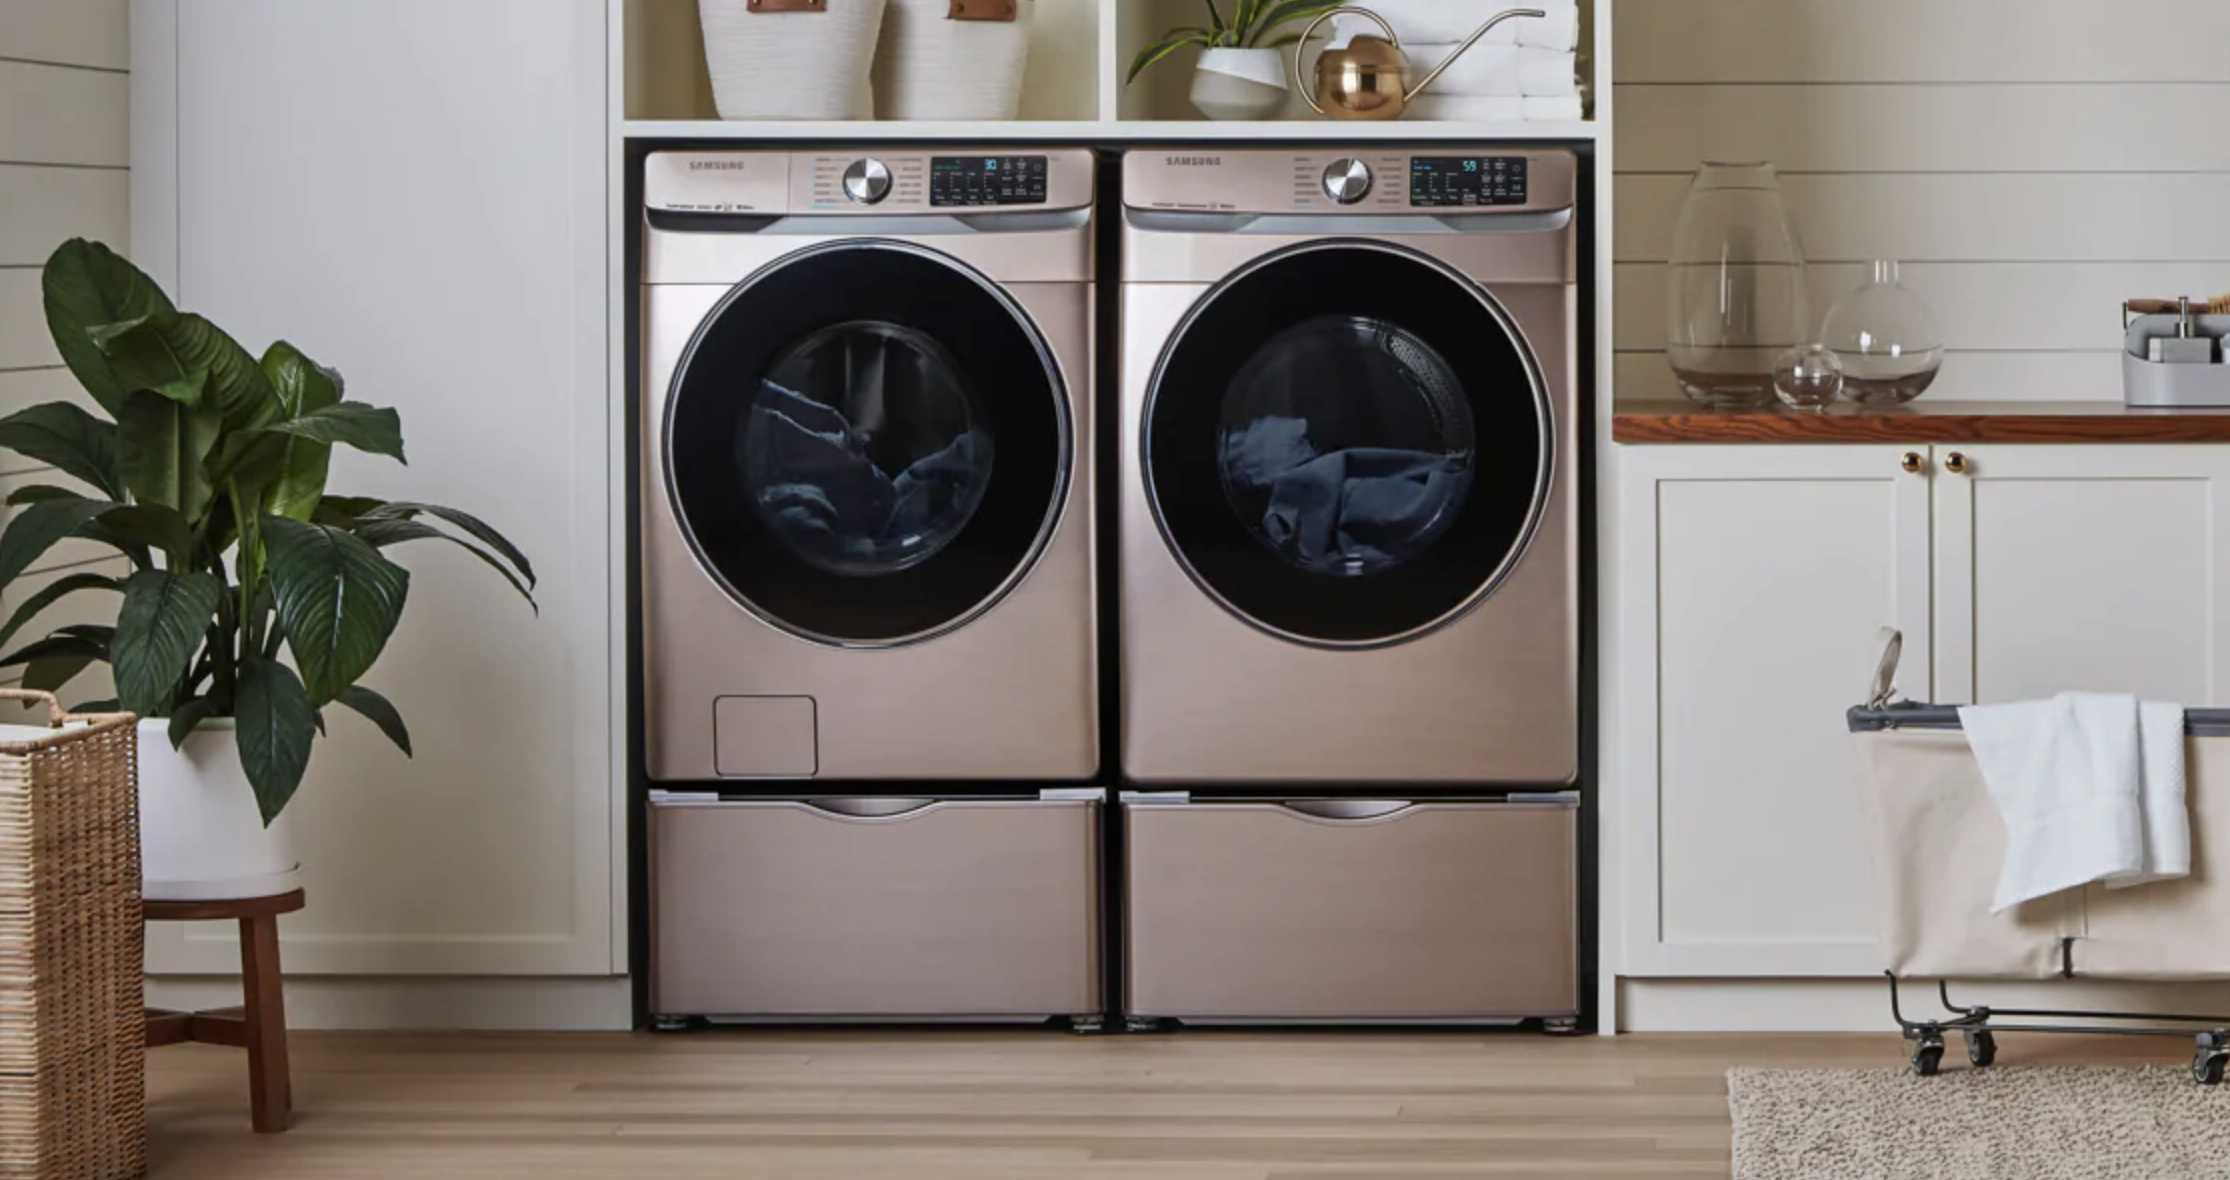 Champagne Washer Dryer Laundry Room Samsung Washer Laundry Room Design